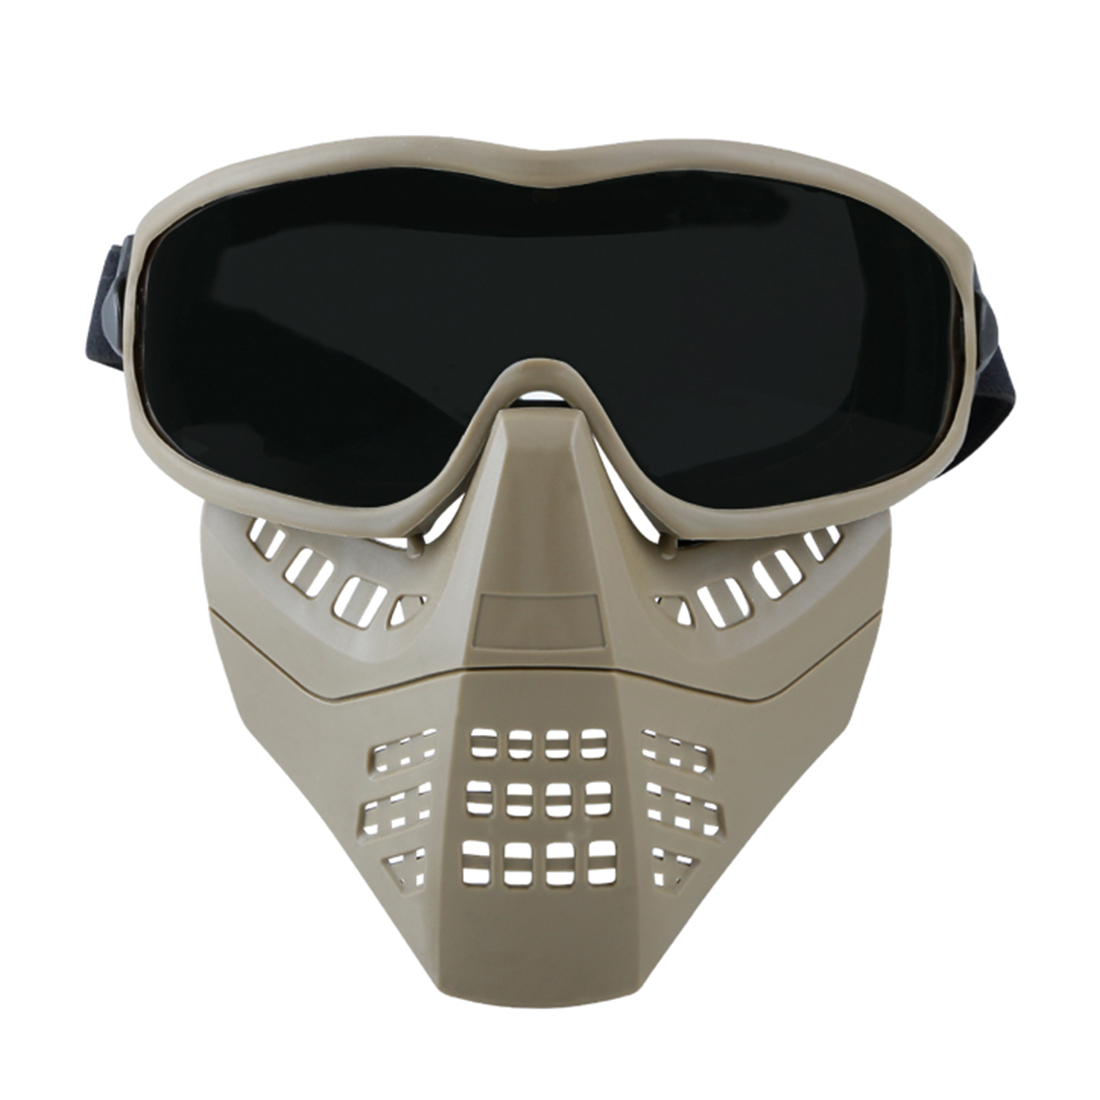 WST Outdoor Tactics Ant Type Mask Face Guard Protective Mask For Women And Children Head Size - Tan + BK Eyeglass